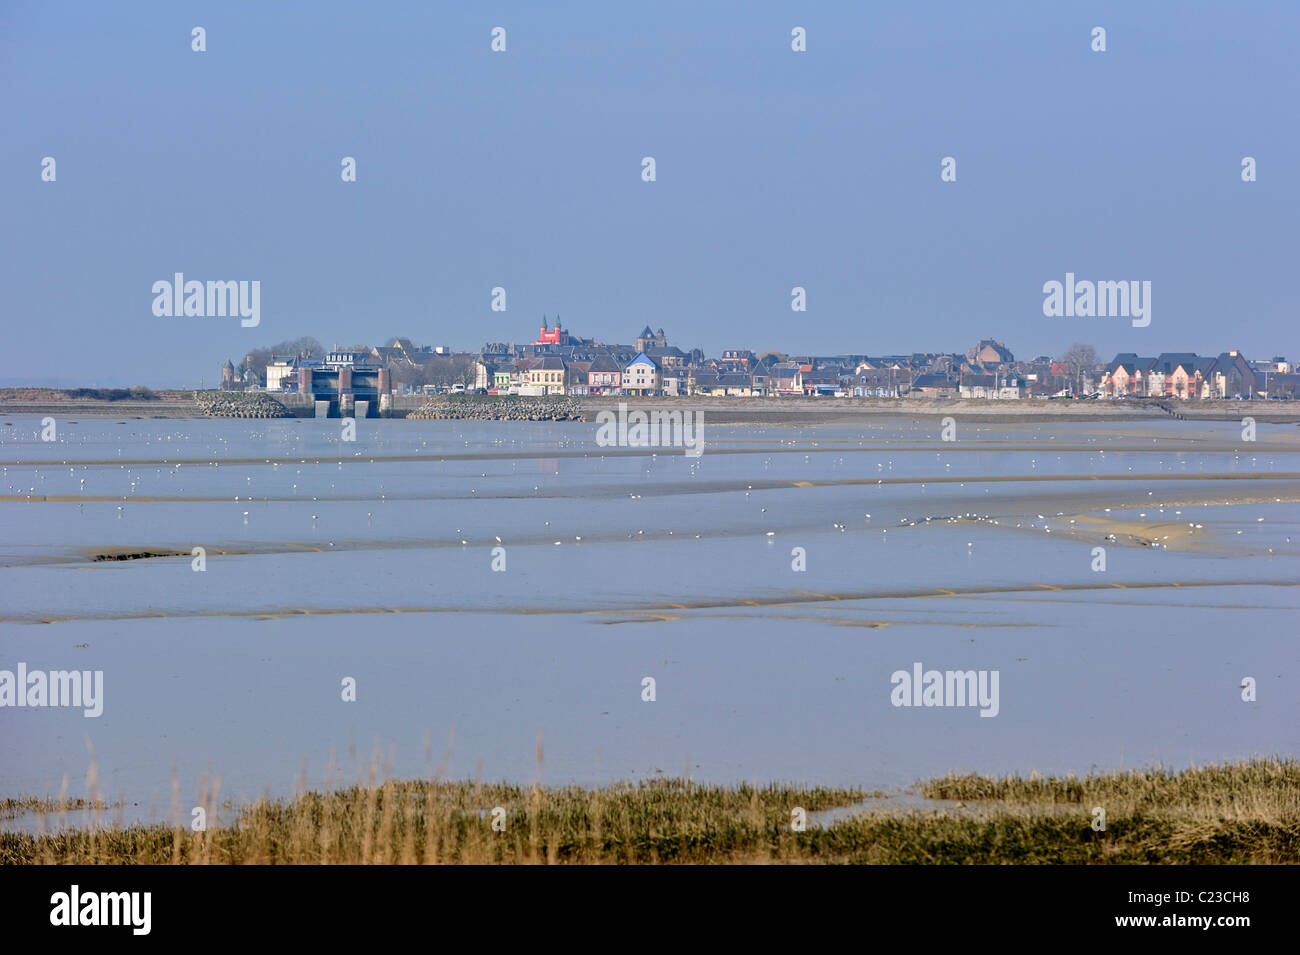 Bay of the Somme and view over the village Le Crotoy, Picardy, France Stock Photo